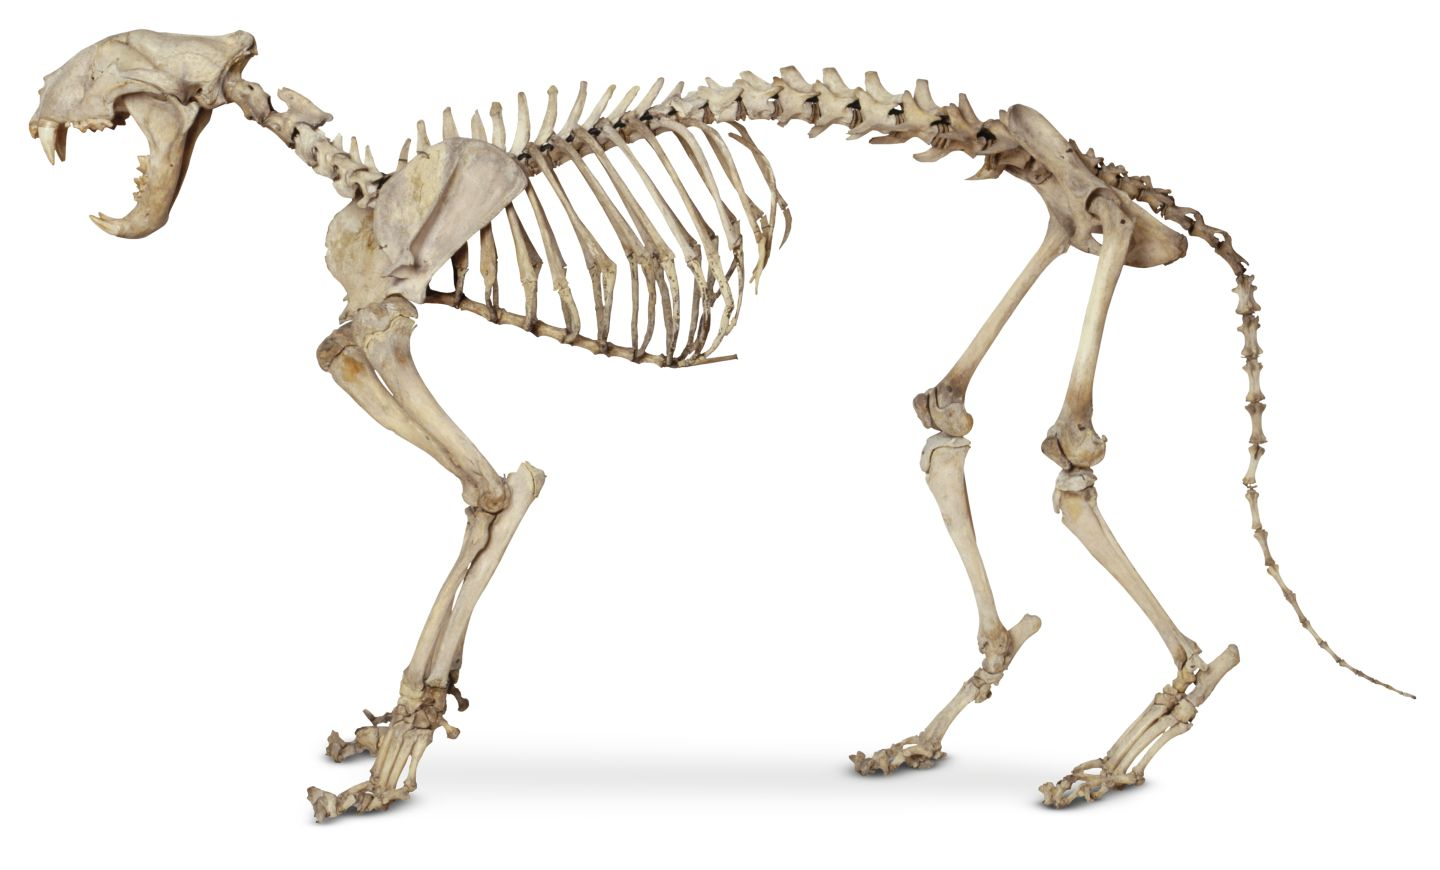 How Many Bones Does A Cat Have In Its Body